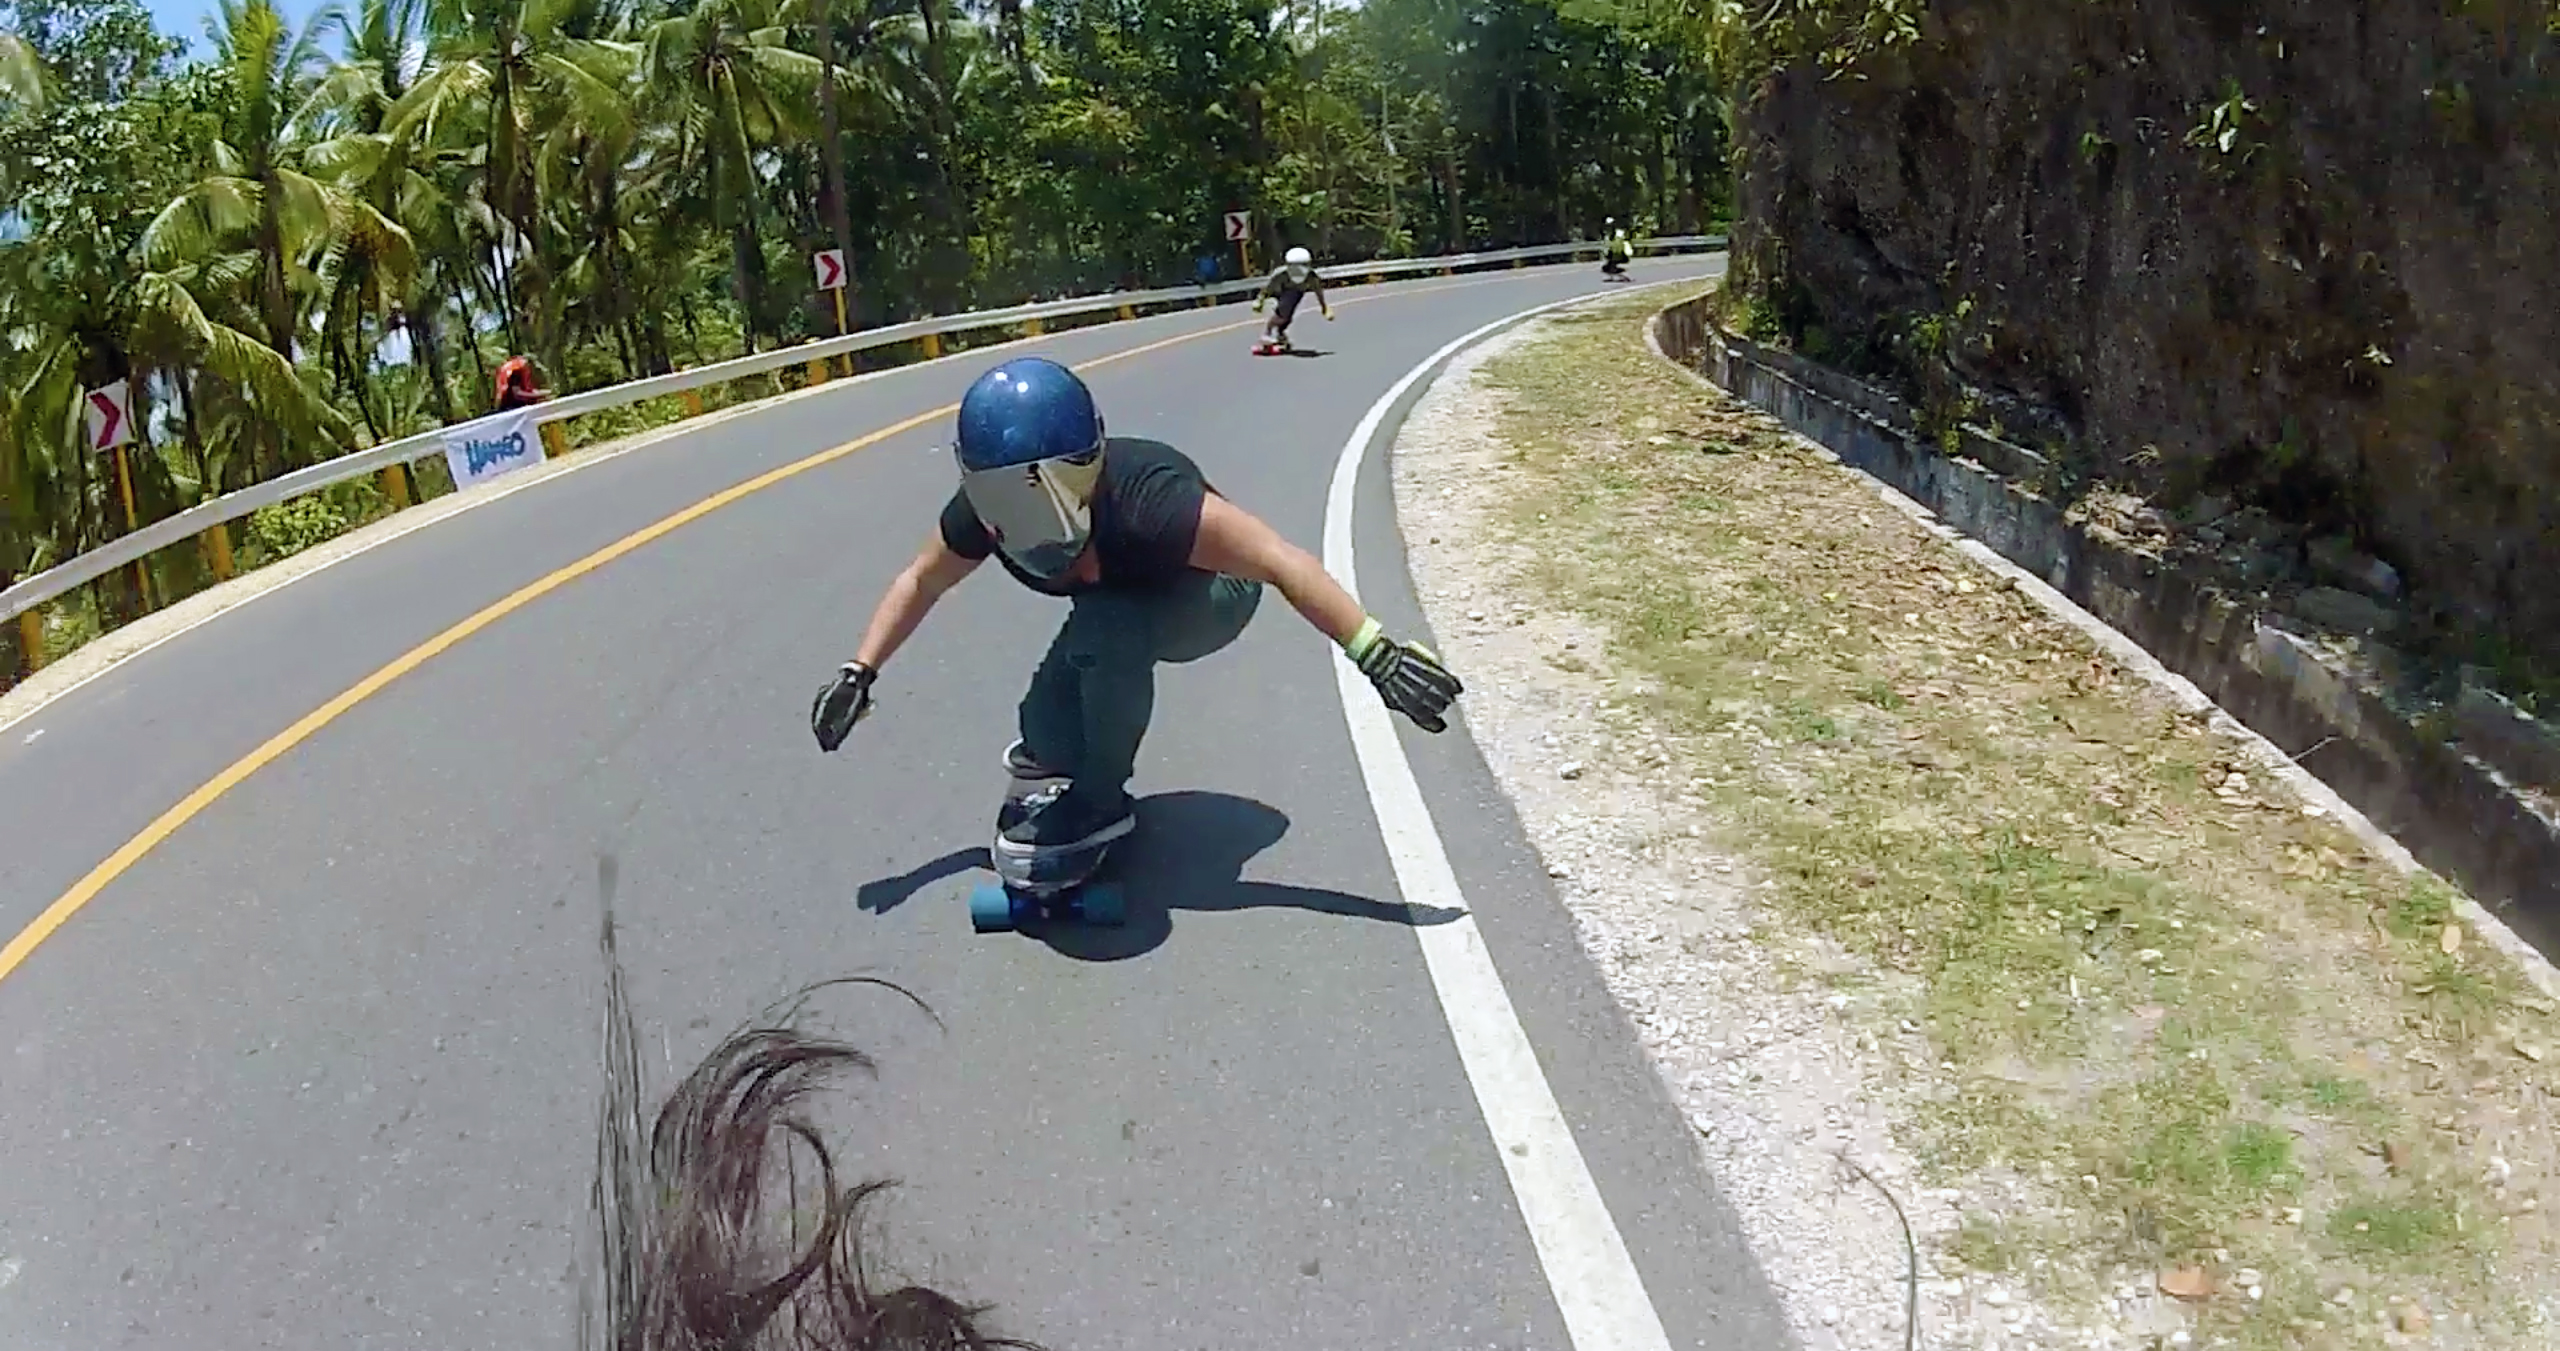 following maga capalanas heelside